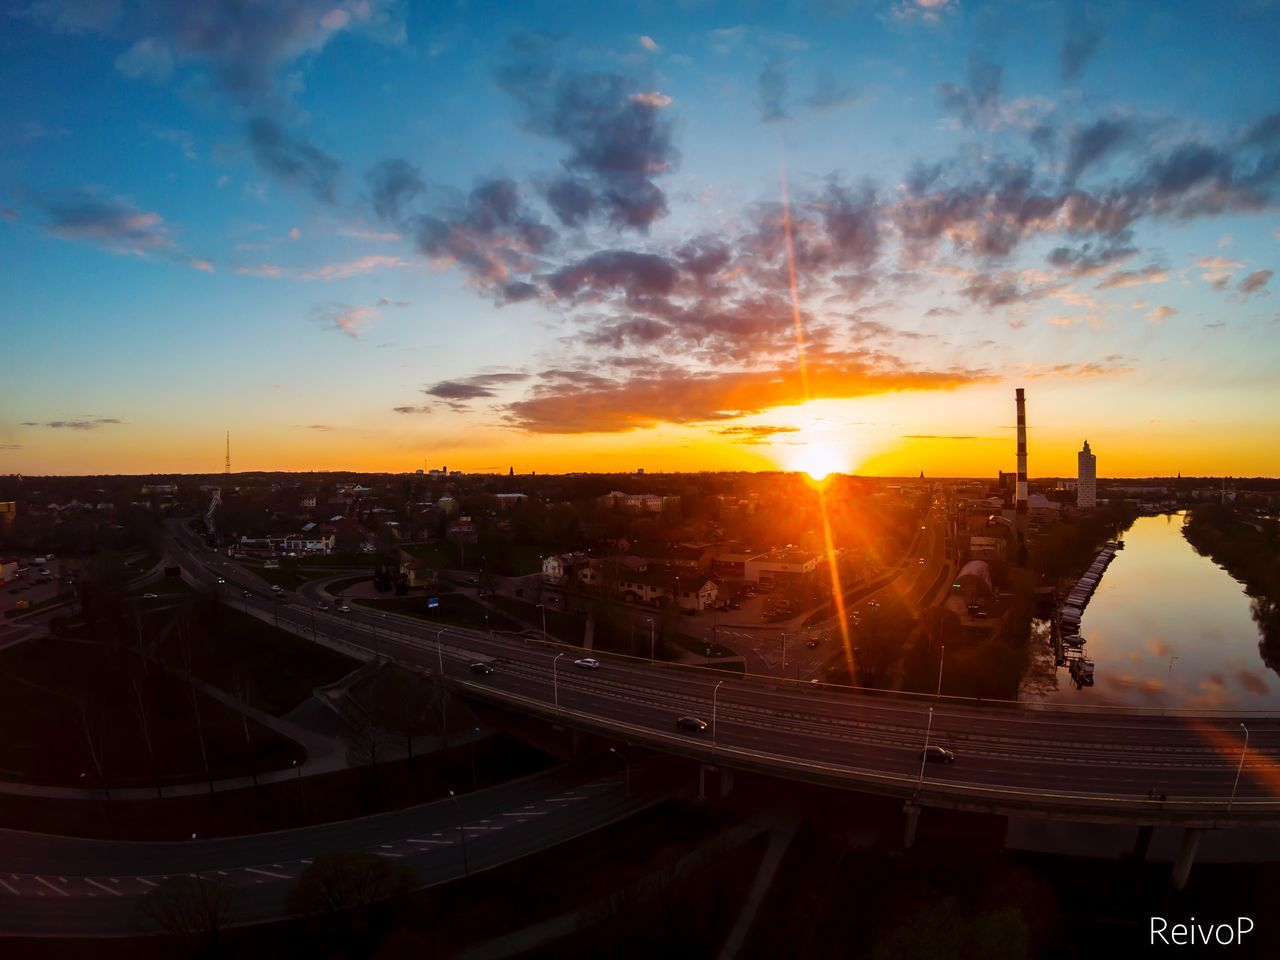 sunset, sky, sun, transportation, architecture, bridge - man made structure, built structure, connection, high angle view, cloud - sky, city, no people, sunlight, outdoors, road, building exterior, cityscape, nature, day